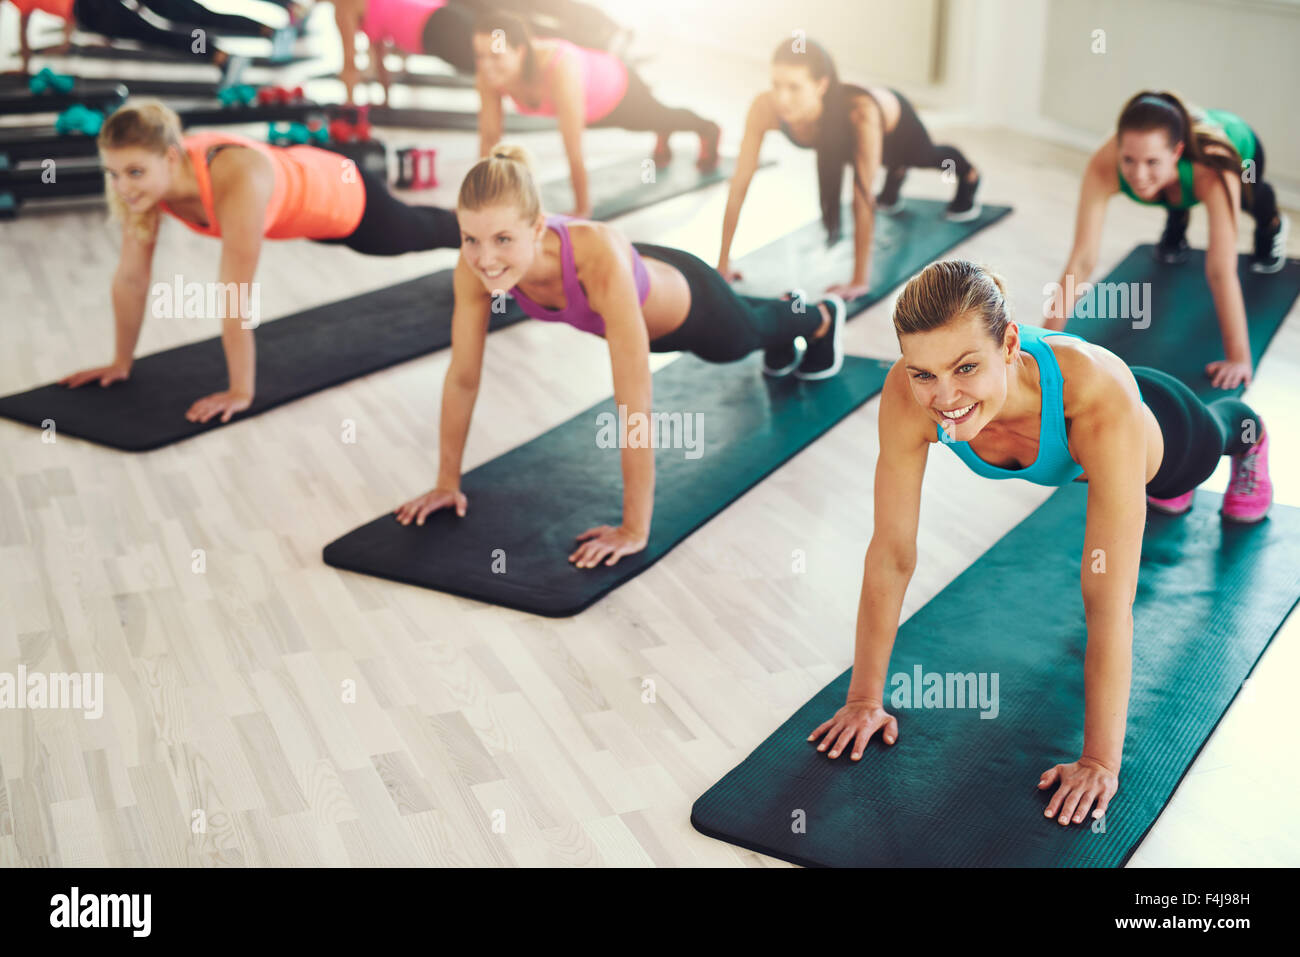 Large group of young women working out in a gym doing push ups in an aerobics class in a health and fitness concept - Stock Image